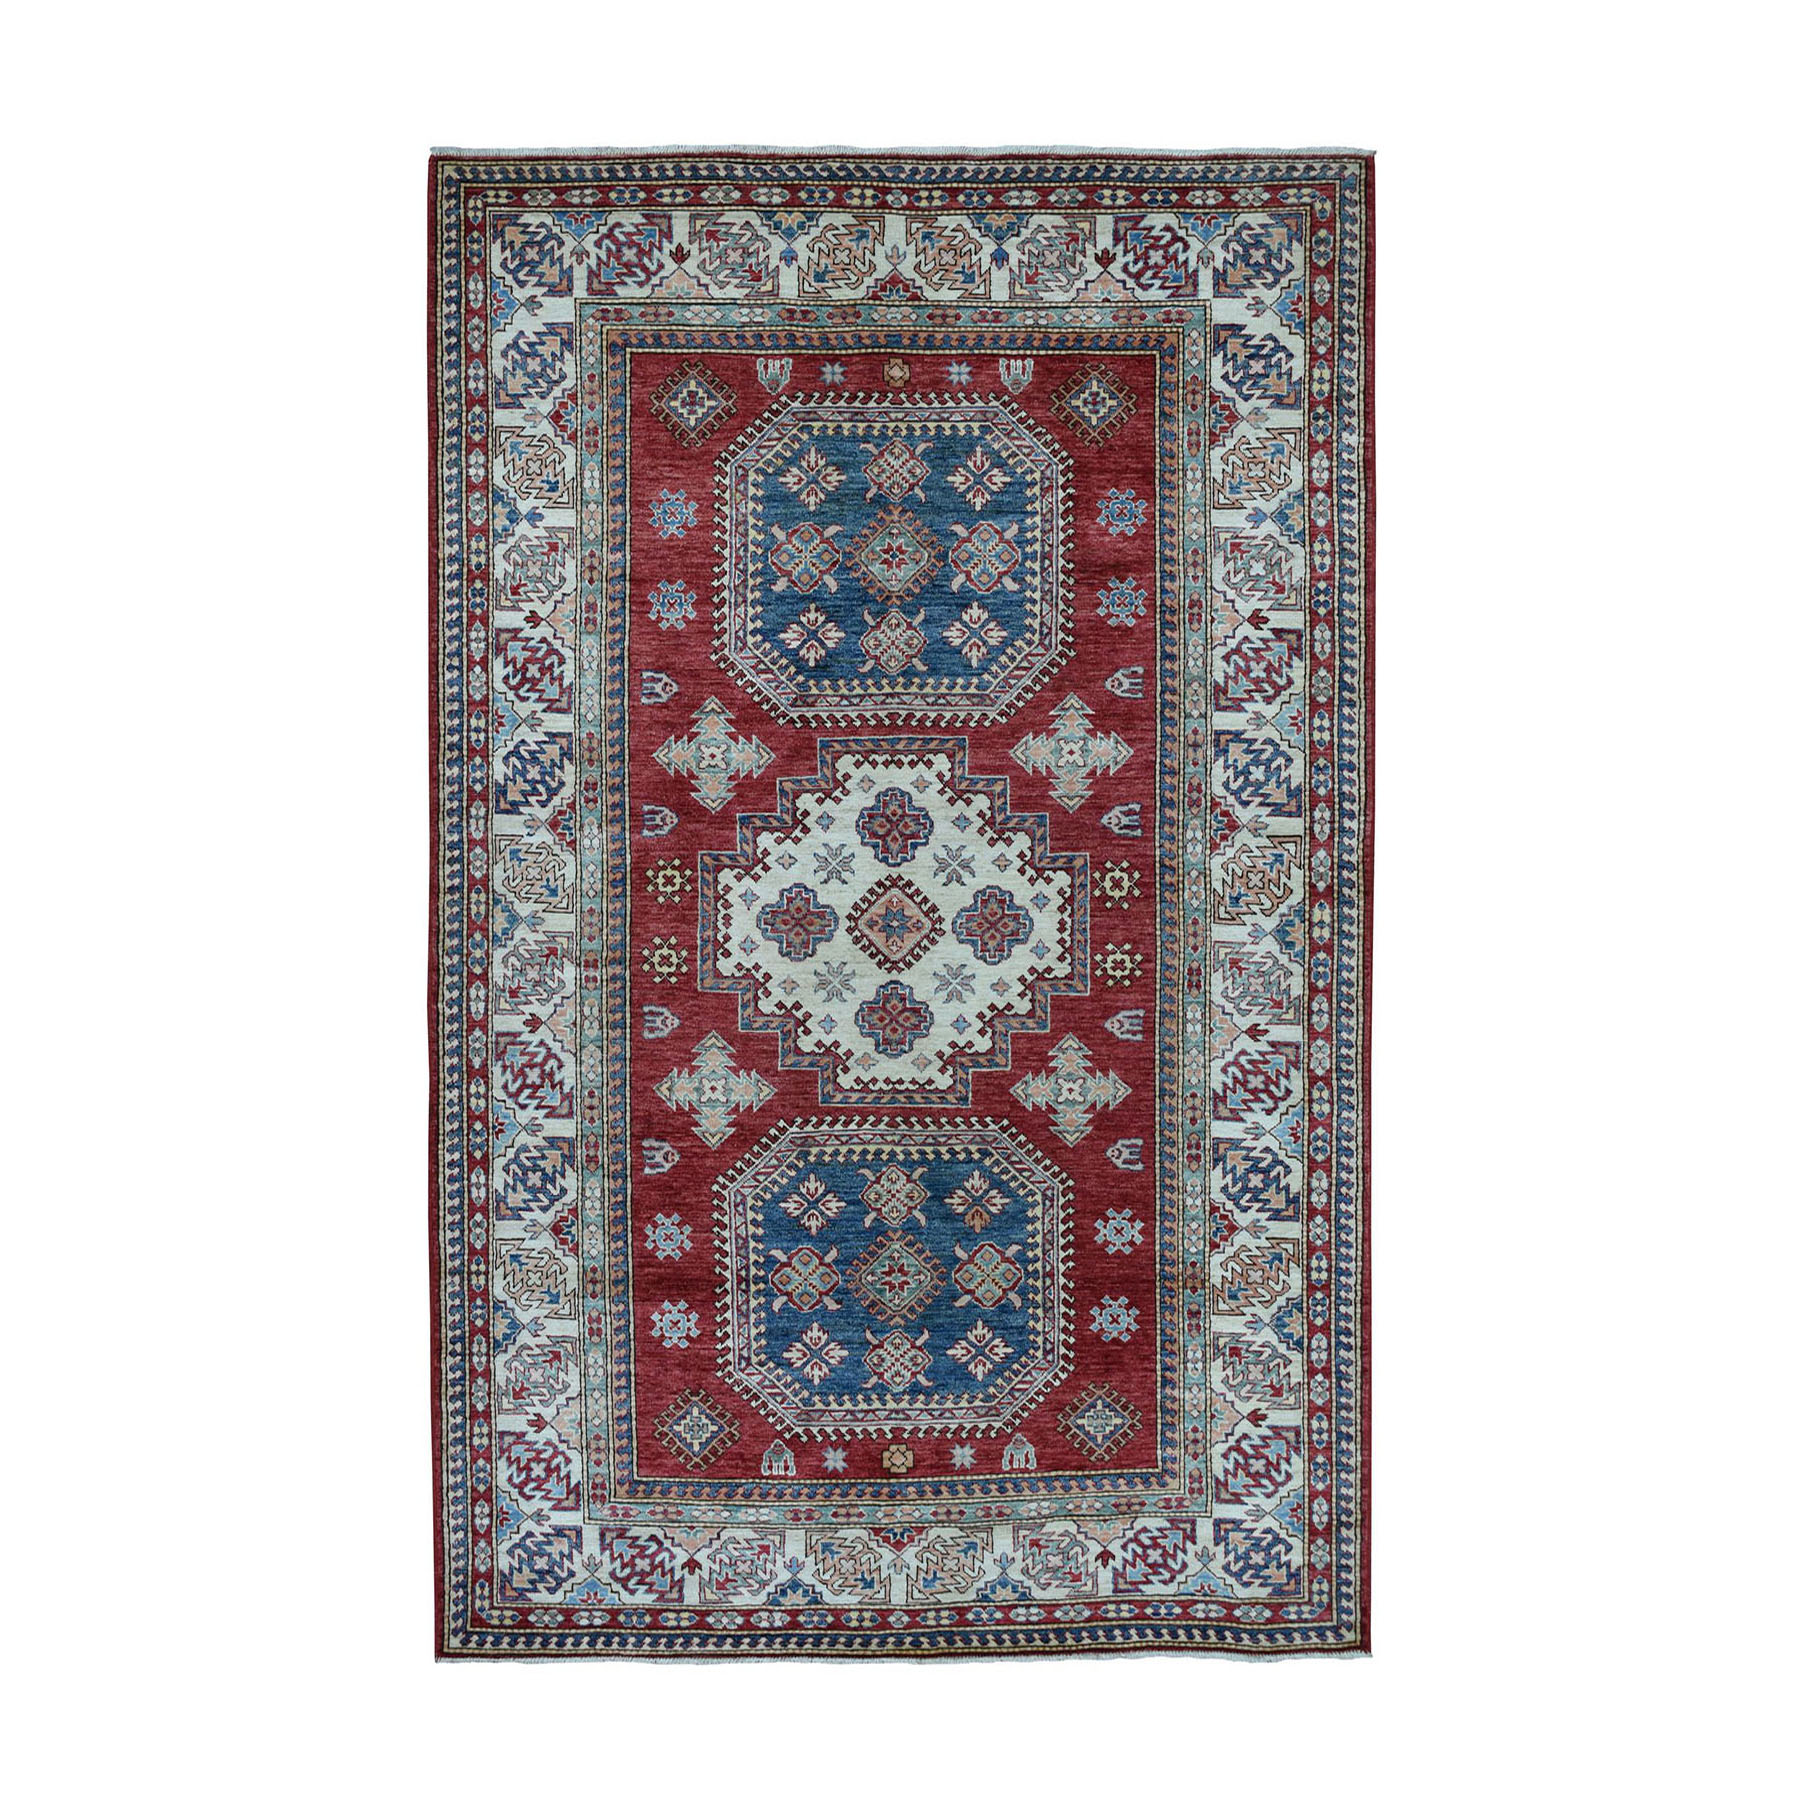 "5'9""x8'9"" Red Super Kazak Pure Wool Geometric Design Hand-Knotted Oriental Rug"